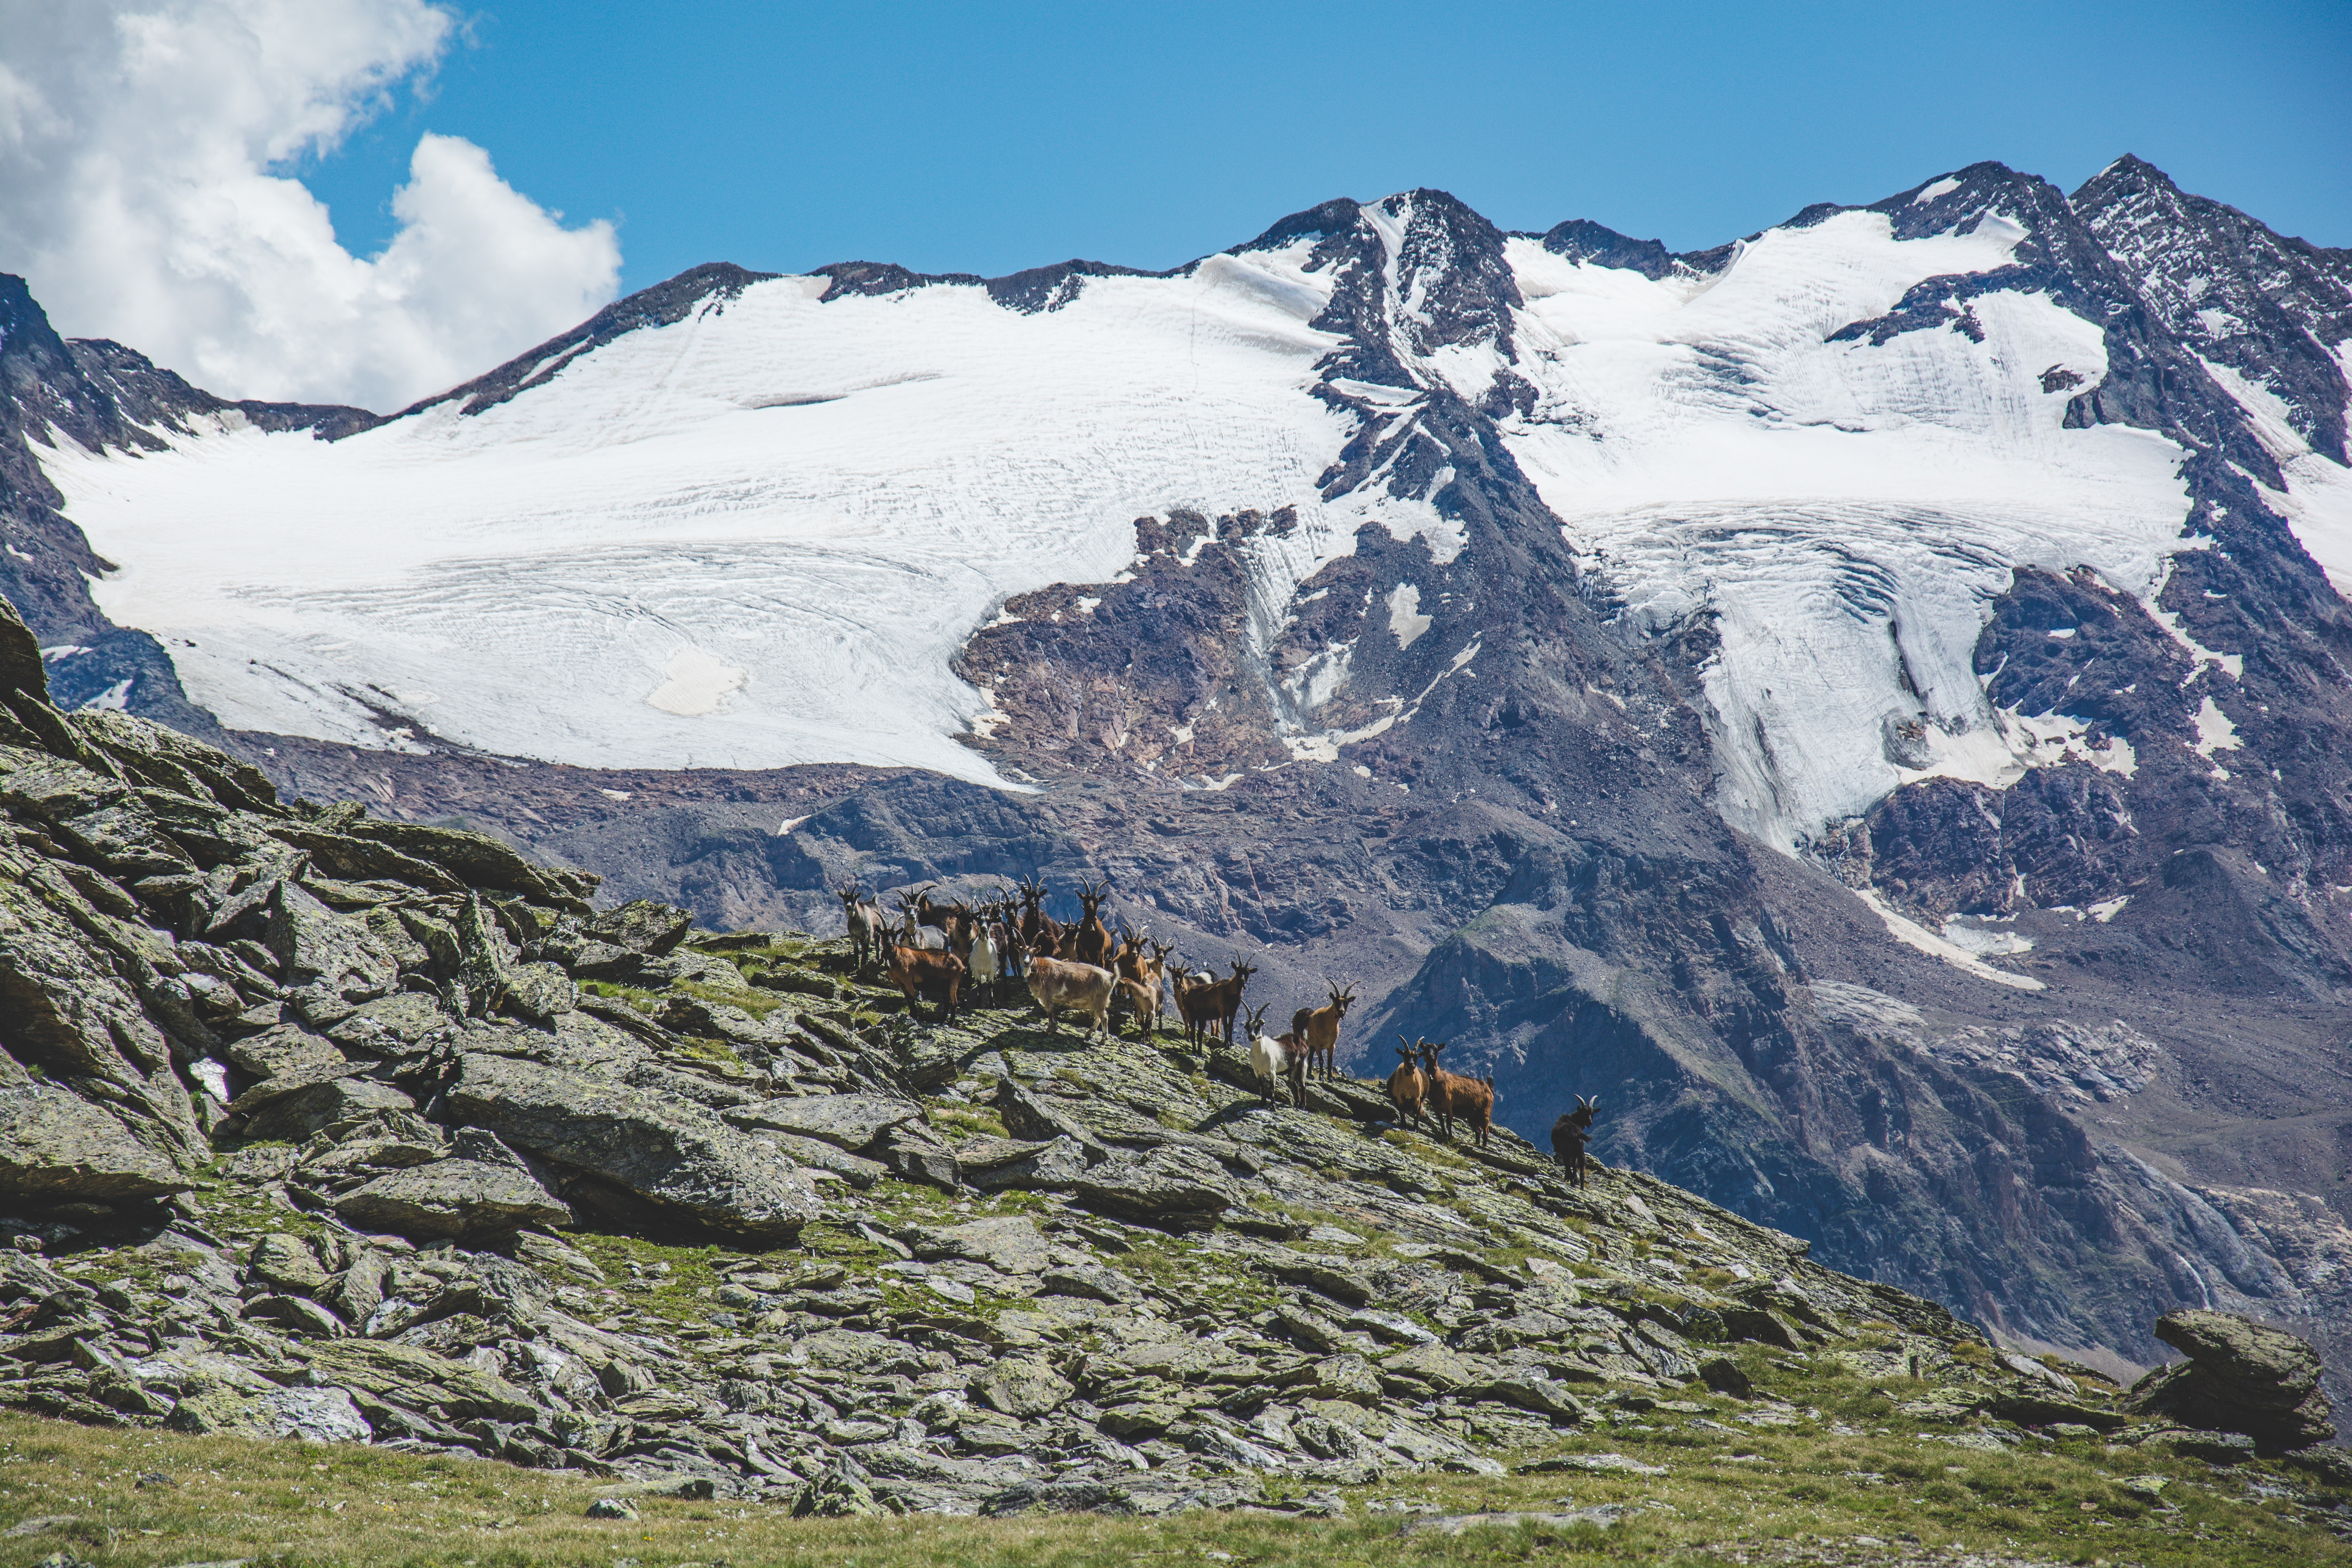 A group of mountain goats standing on a rocky hill under a snowy mountain peak in a bright sunny day